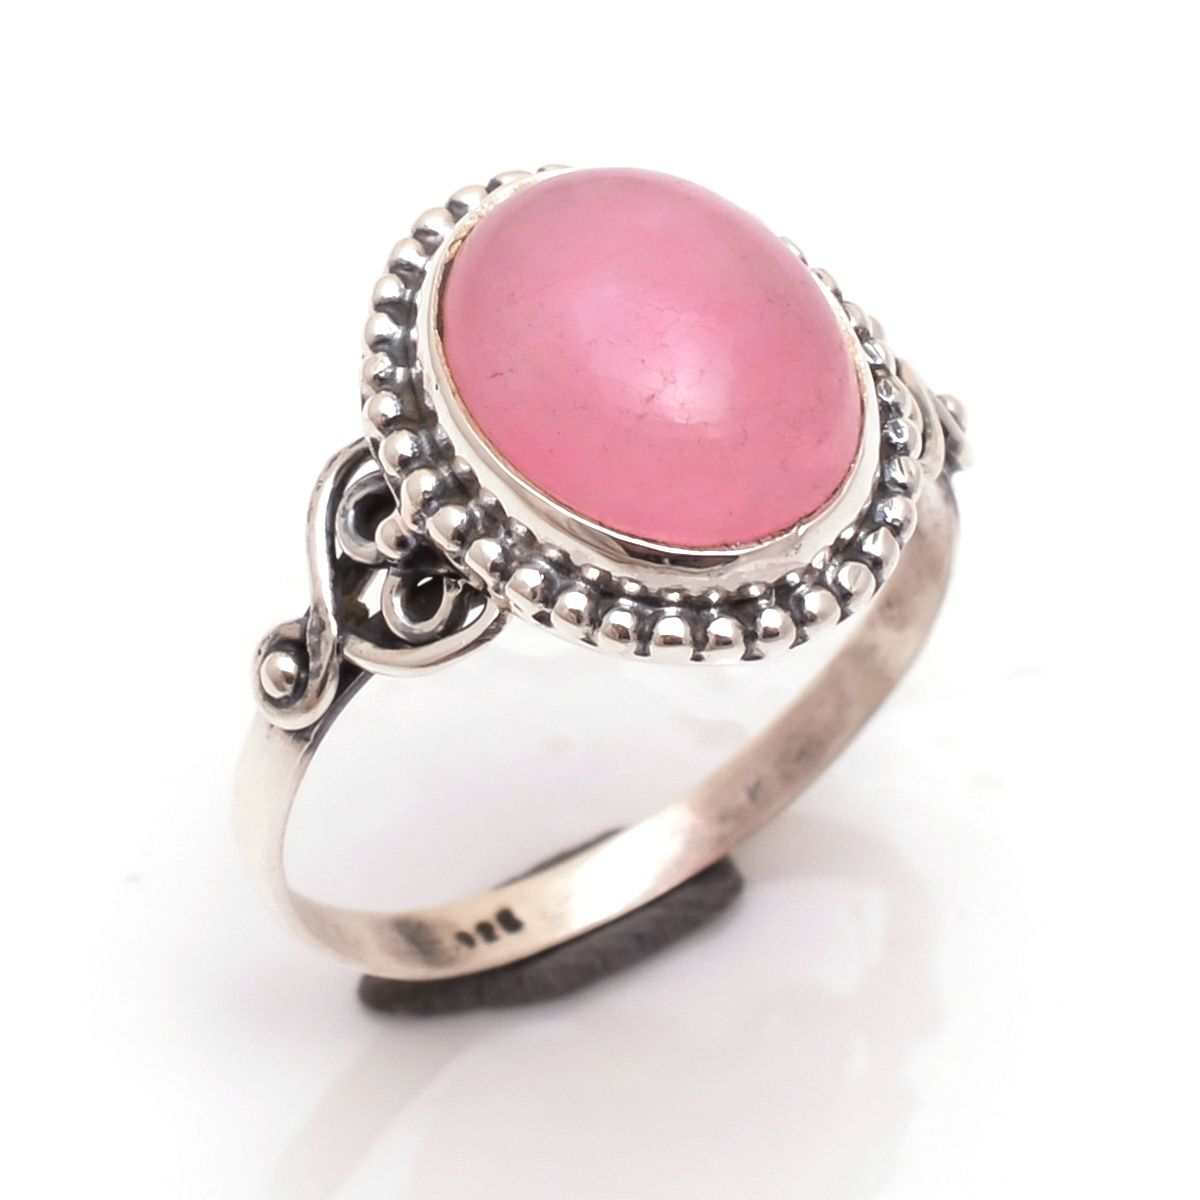 Pink Jade Gemstone 925 Sterling Silver Ring Size 7